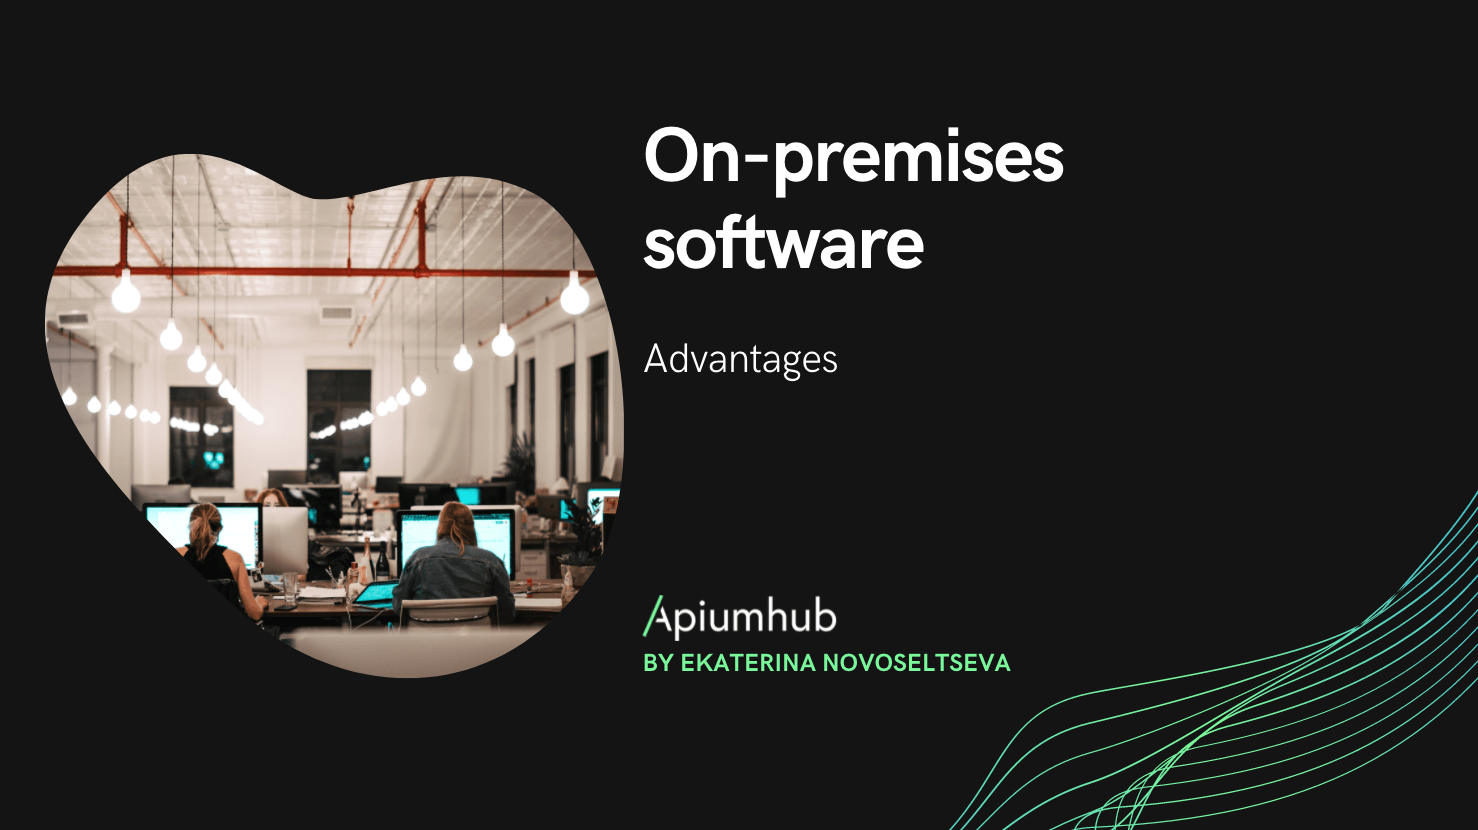 On-premises software advantages